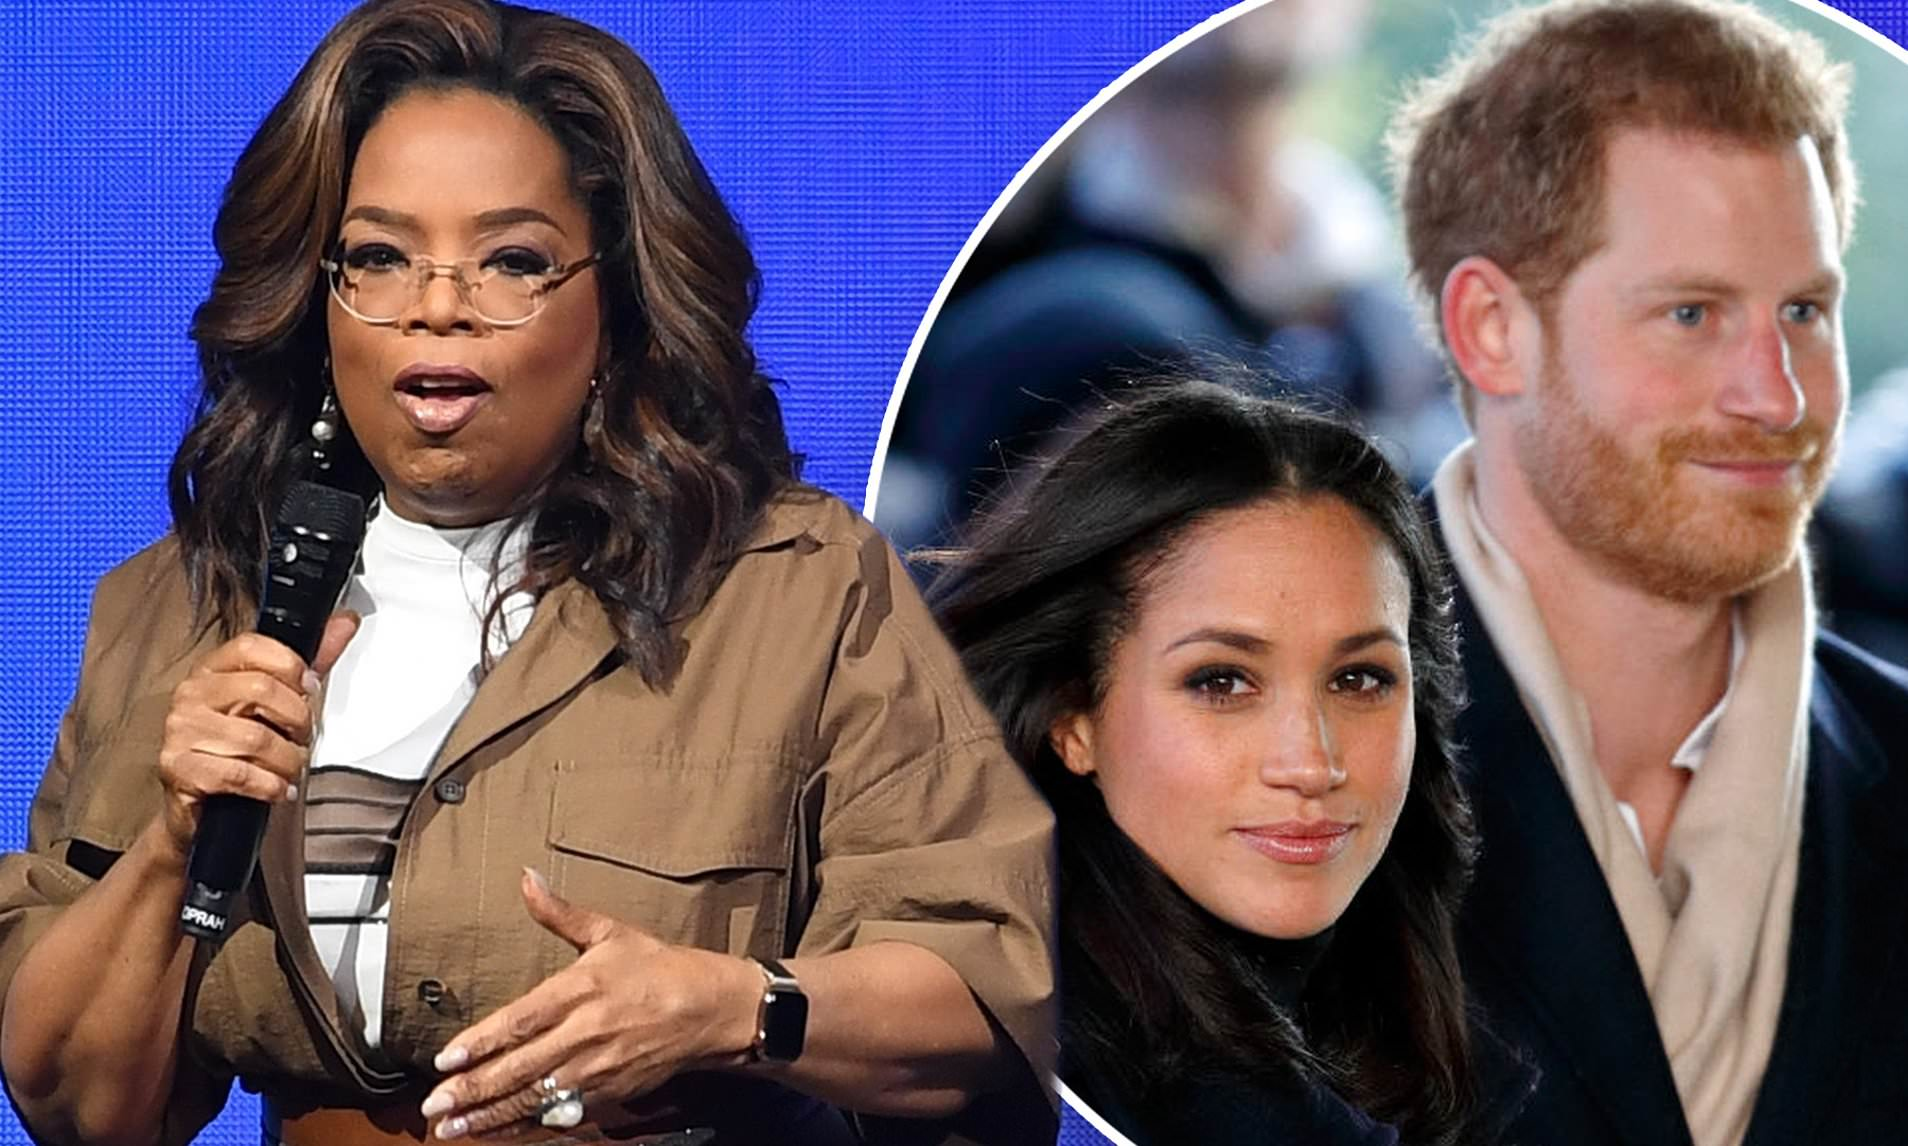 Prince Harry and Meghan Markle set to tell all to Oprah in 'wide-ranging' and 'intimate' prime time TV interview that will cover 'everything' from their royal exit to marriage and pregnancy